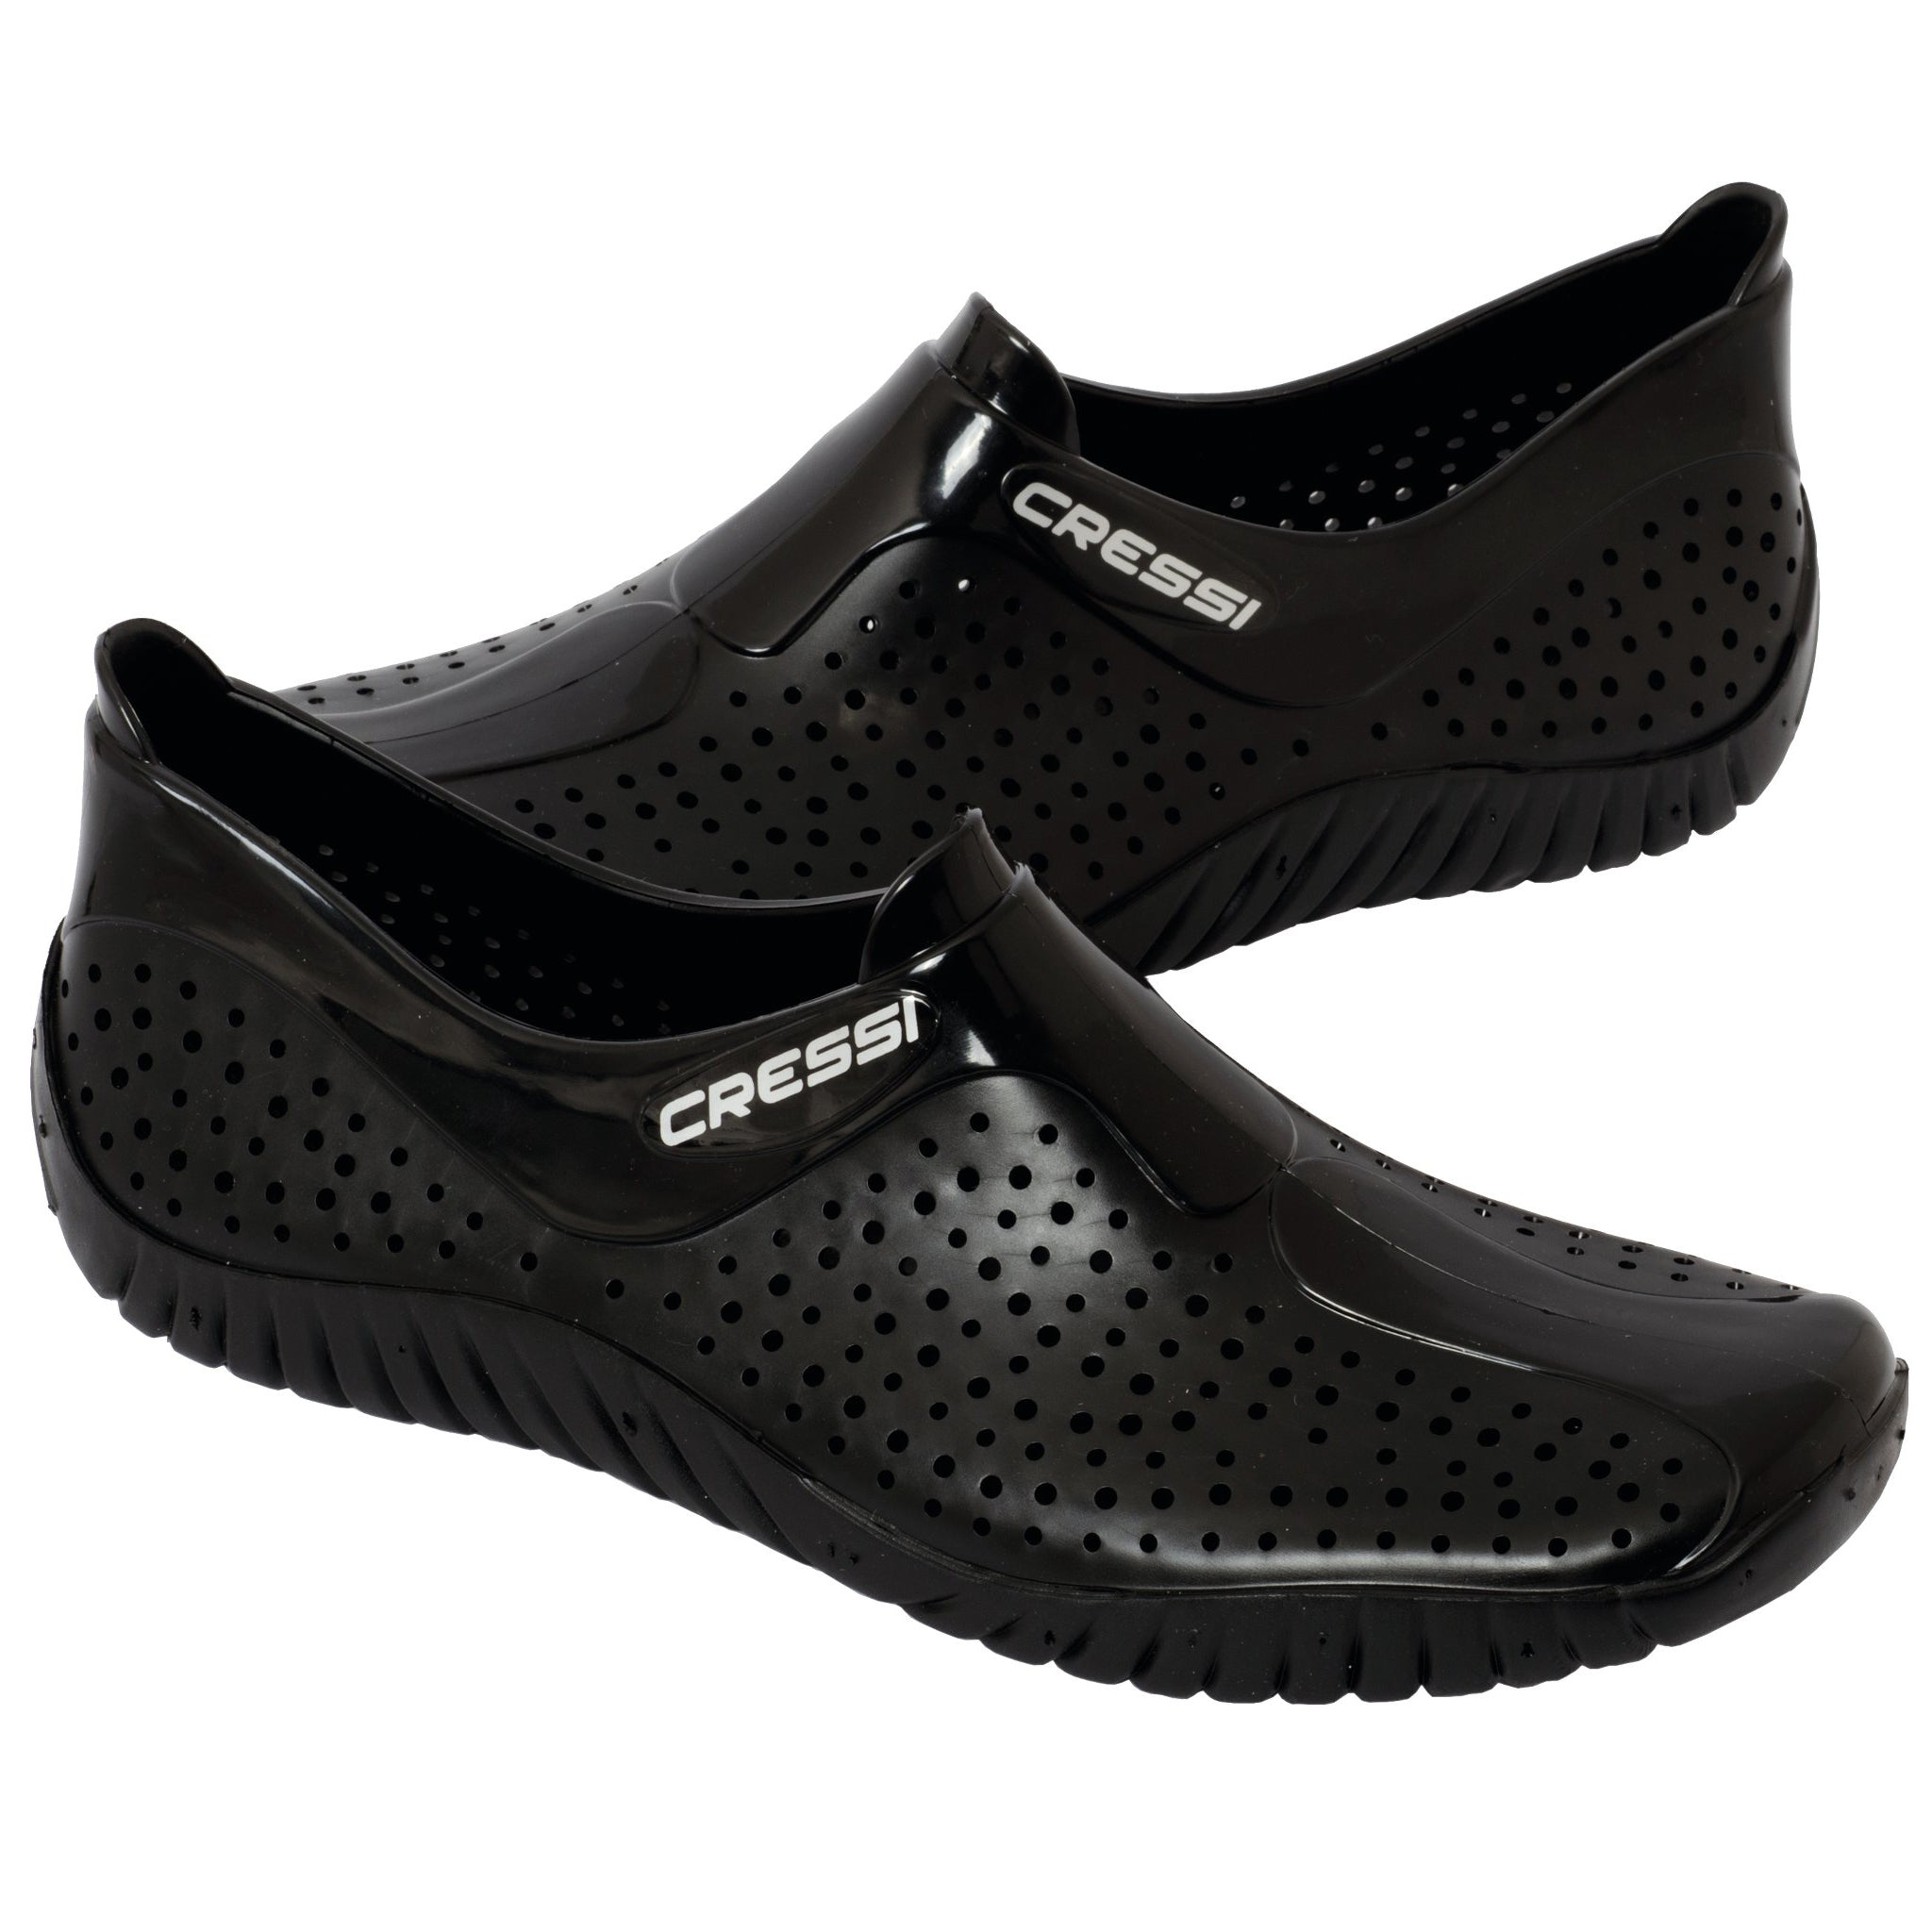 e19a17850be44f Cressi Water Shoes Adult – Watersports Warehouse